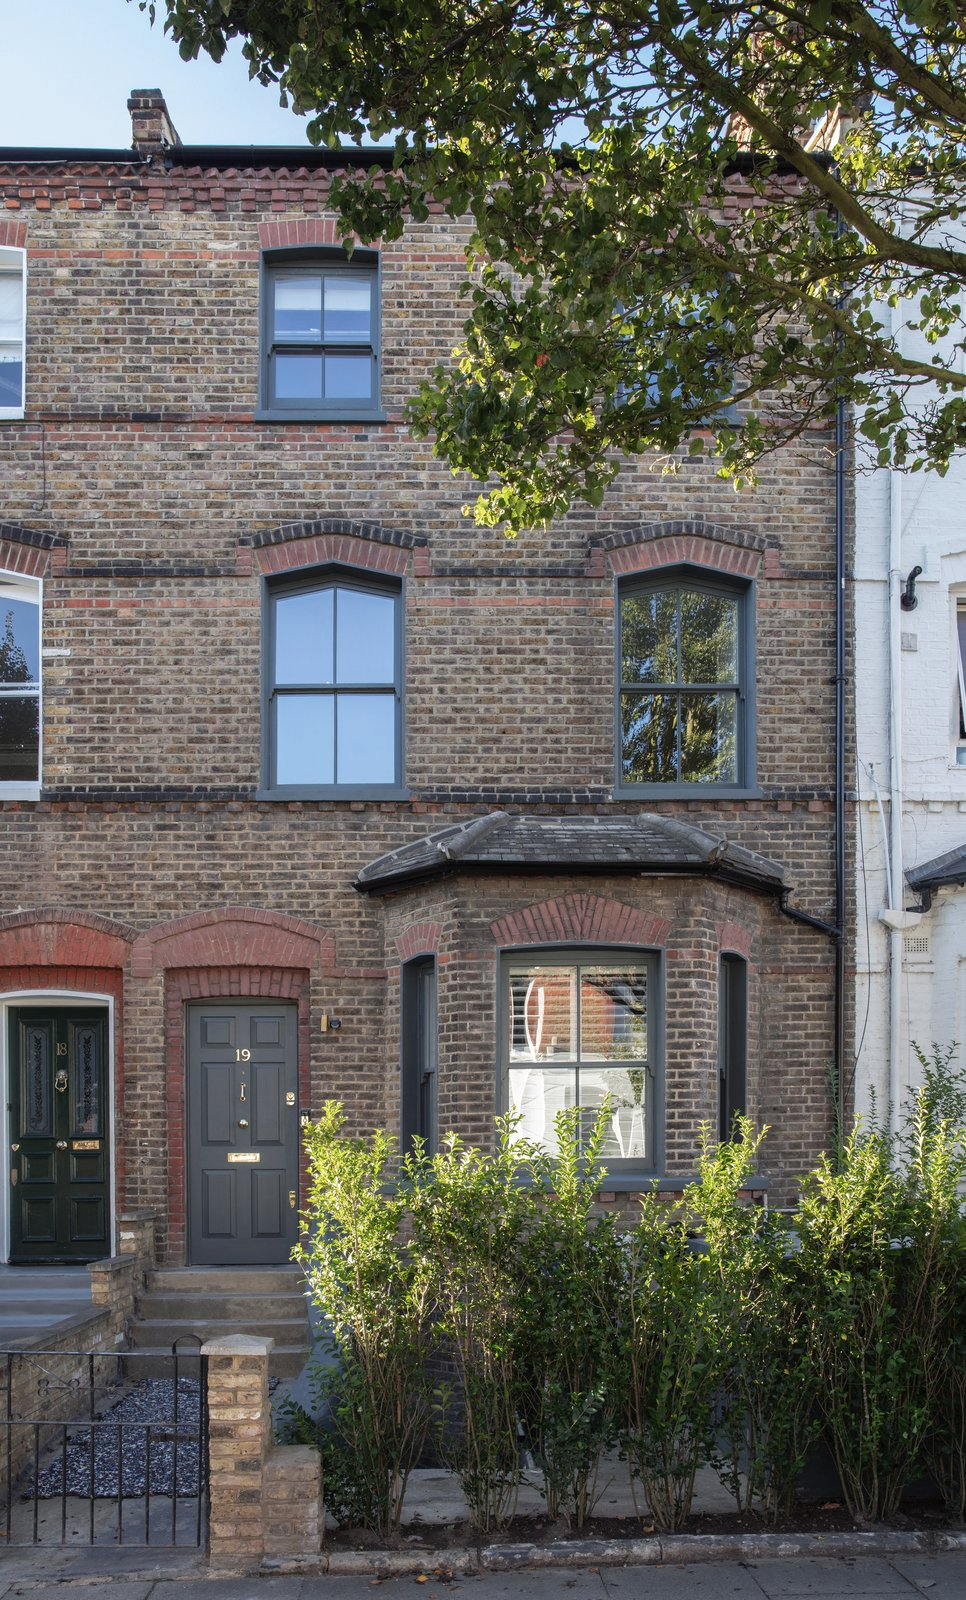 Before & After: A Cramped Victorian in London Lightens Up With a Double-Height Renovation